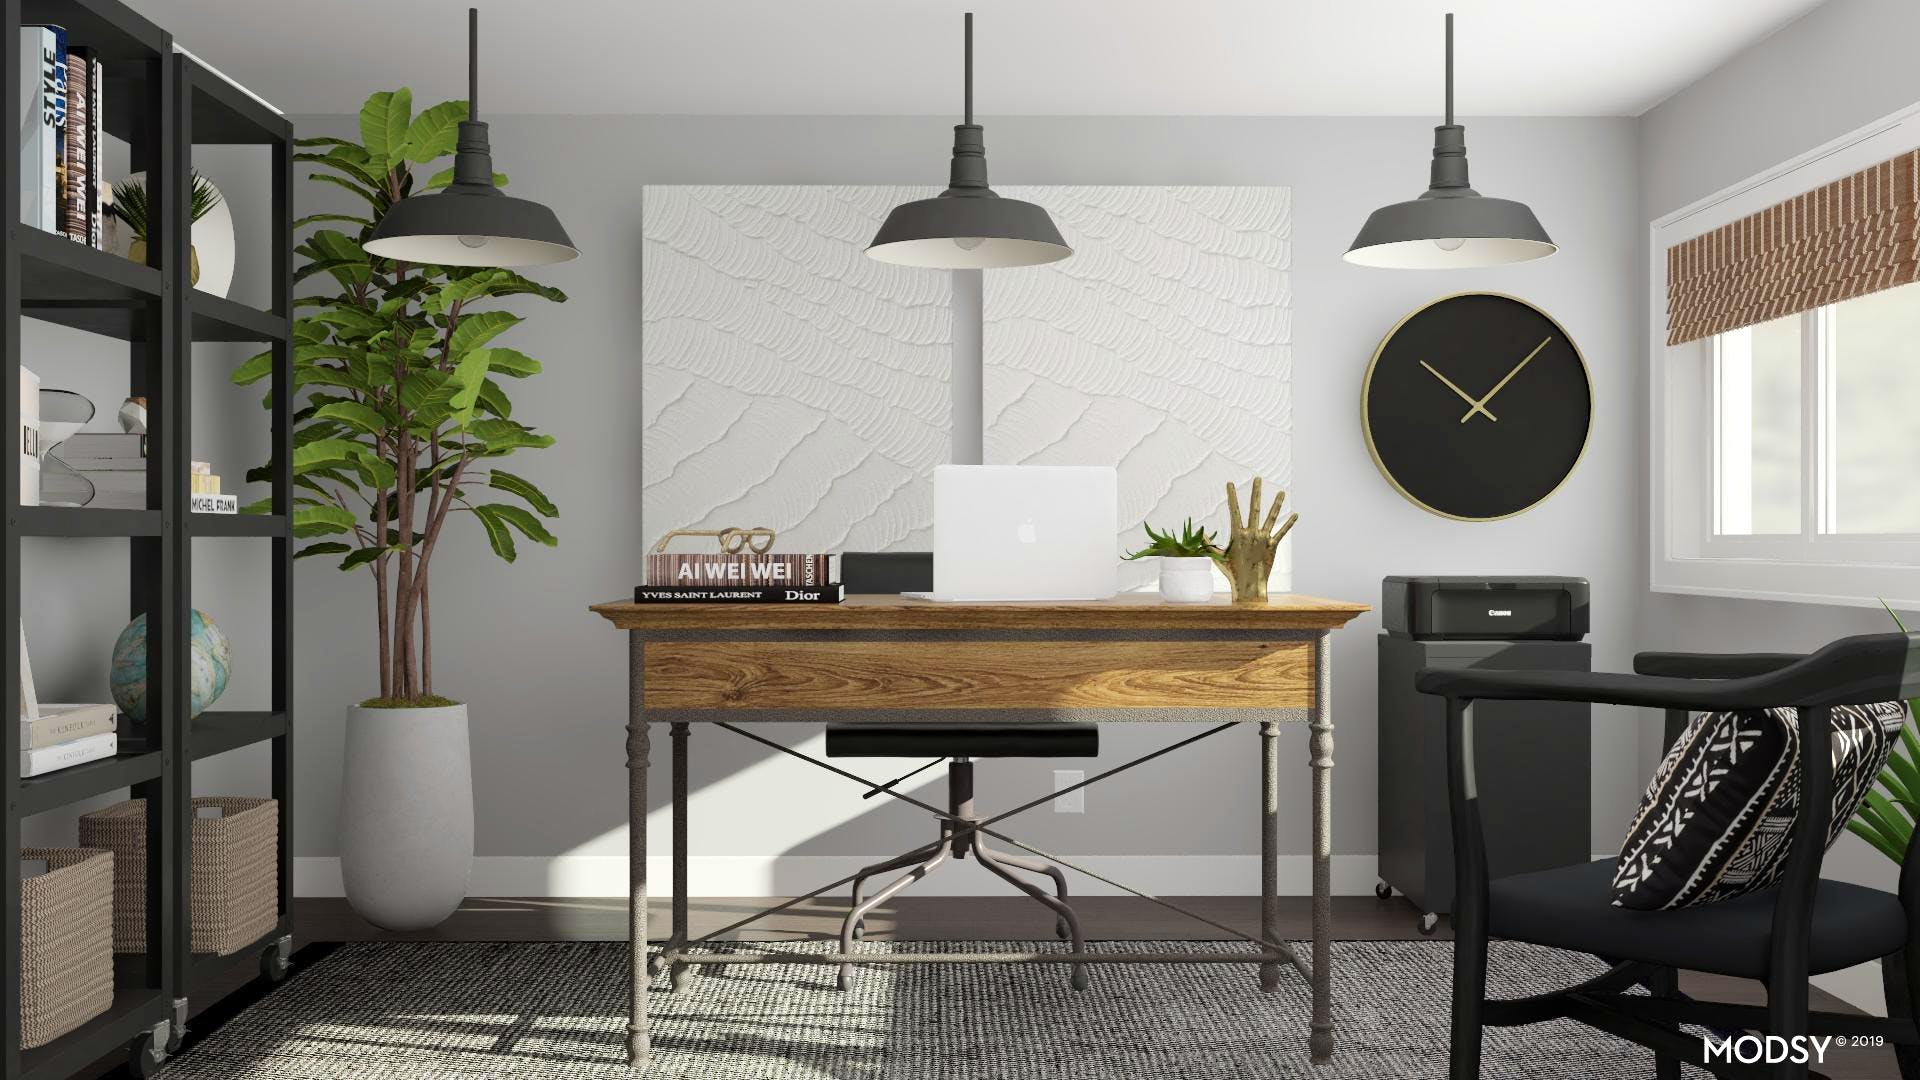 Black & White: An Industrial Office